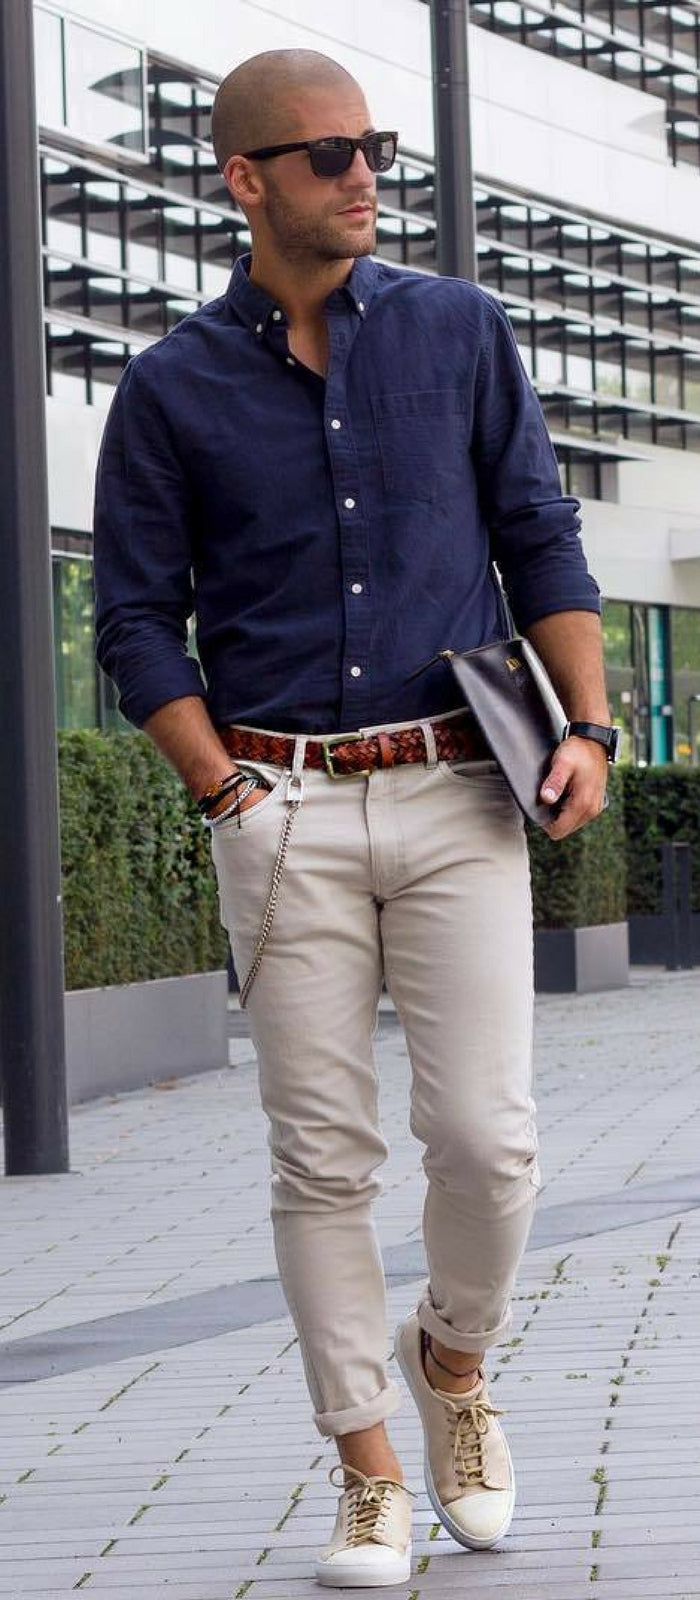 15 Coolest Outfit Ideas For The Summers Lifestyle By Ps